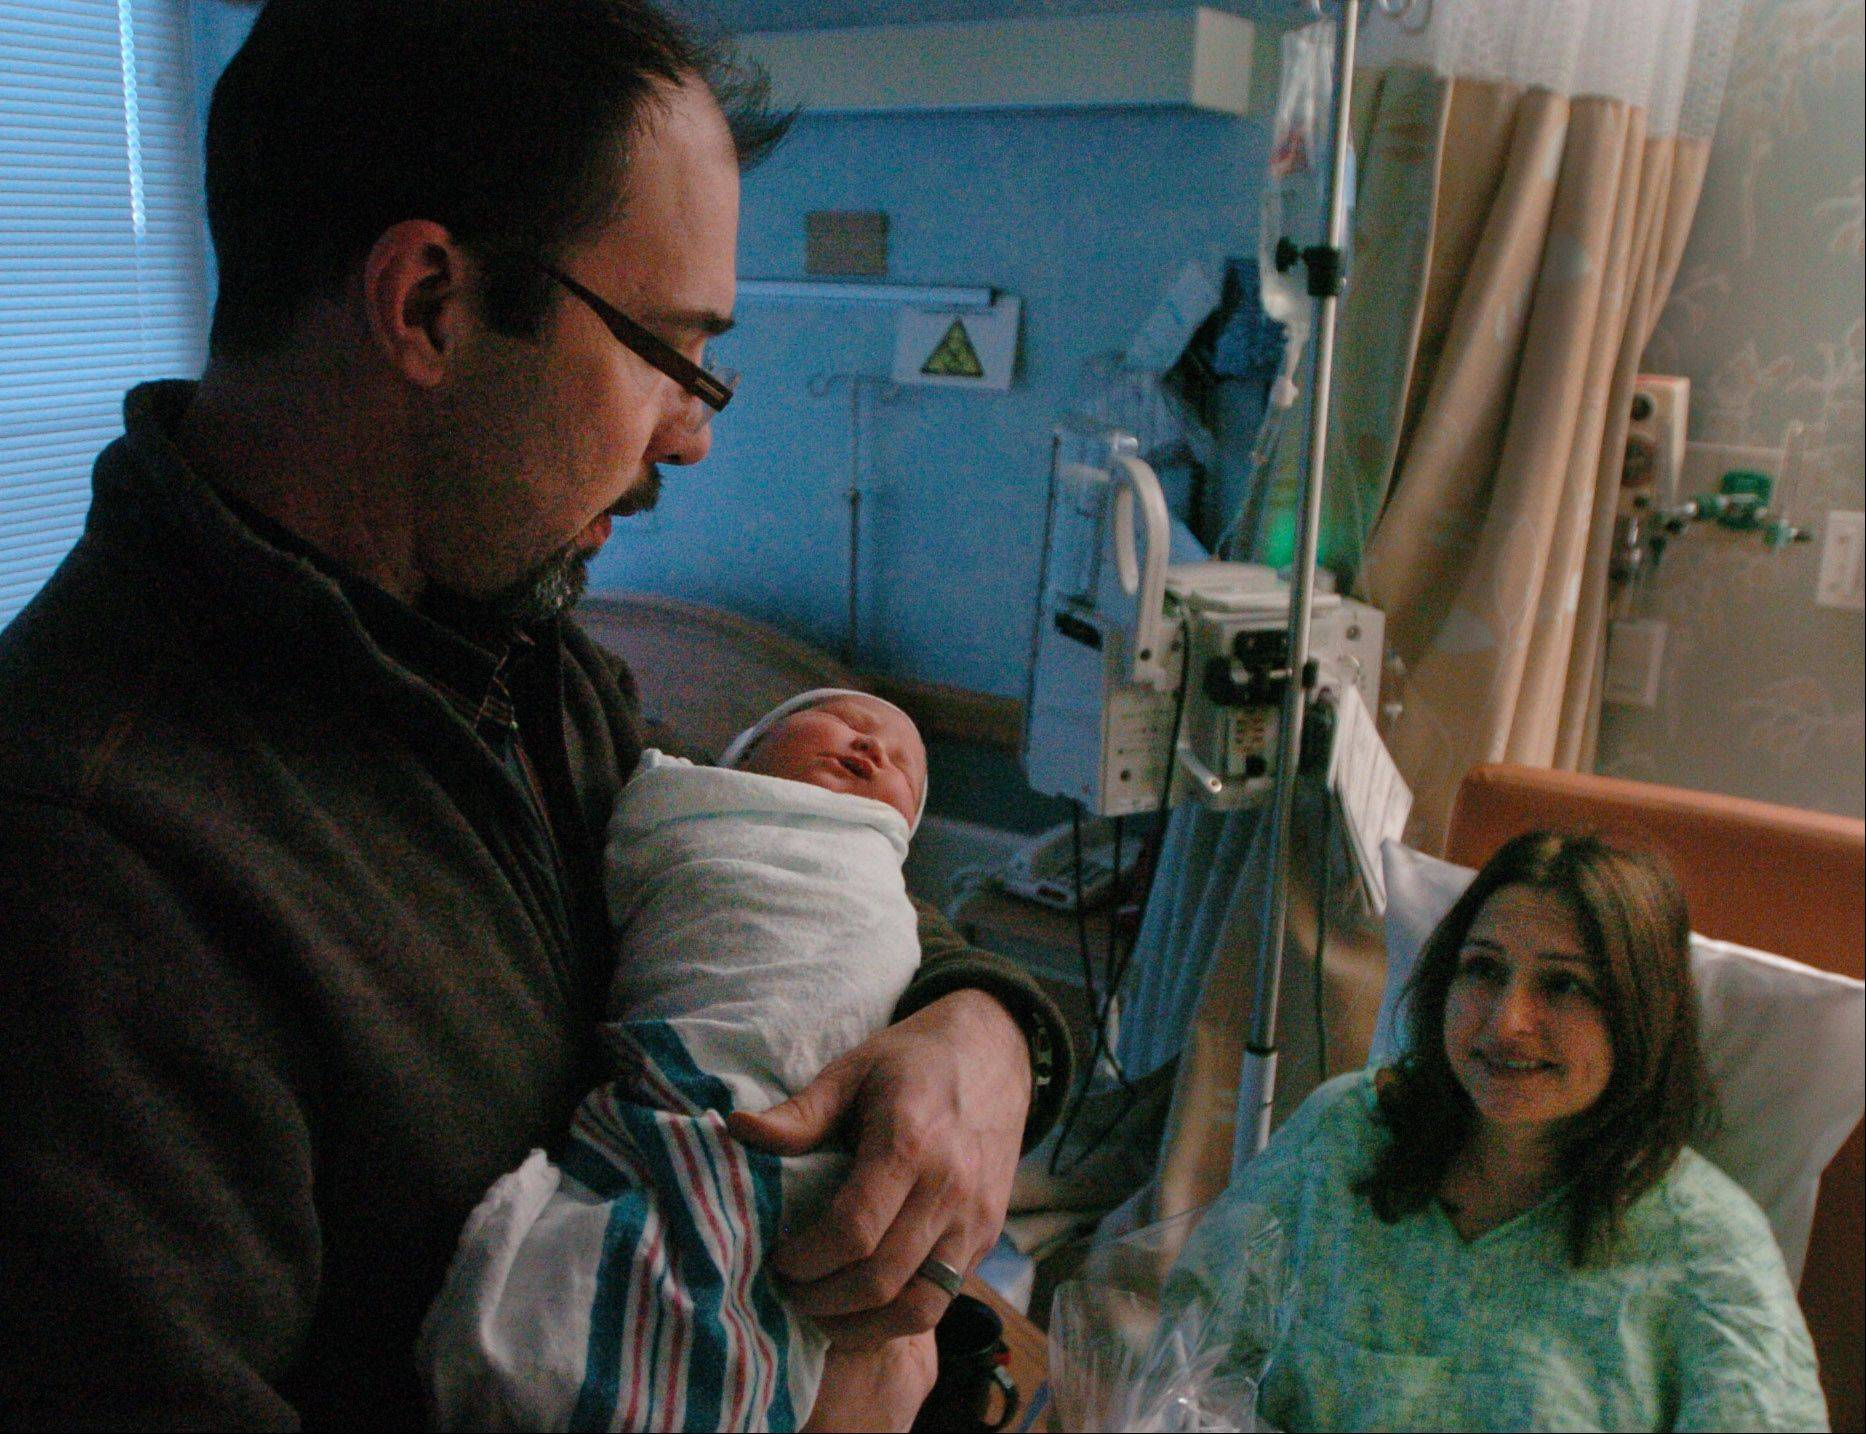 Hope Labbe, born at 12:13 a.m. on New Year's Day, rests in the arms of her father, Sean Labbe, as her mom, Fidan looks on at St. Alexius Medical Center in Hoffman Estates.